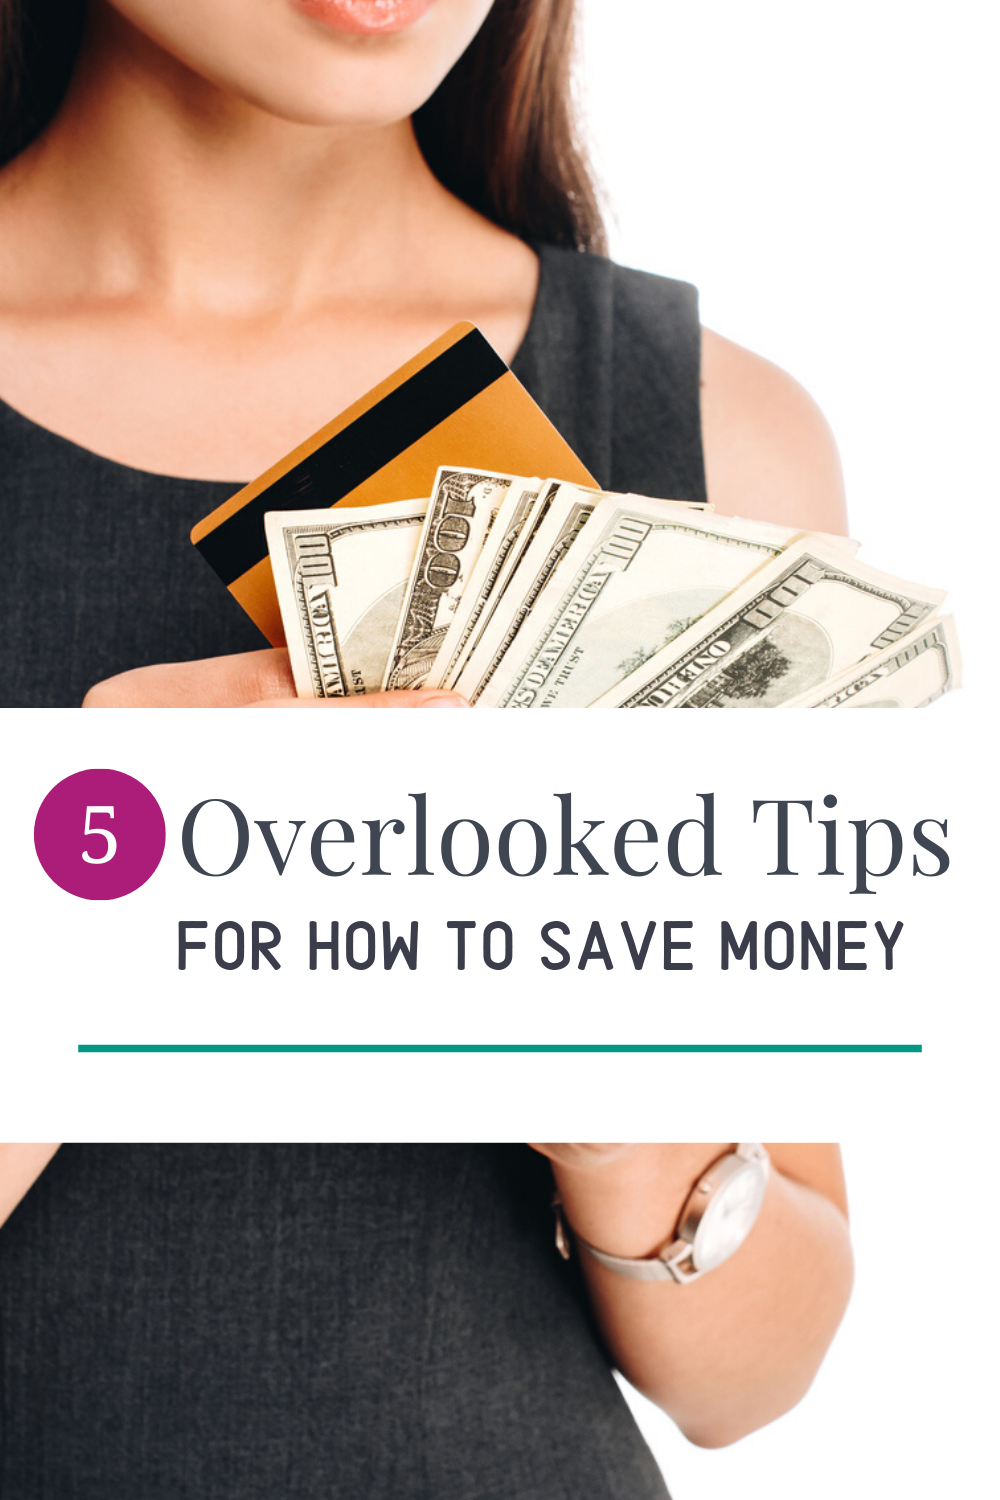 If you are looking for additional ways for how to save money, here are five often overlooked tips.